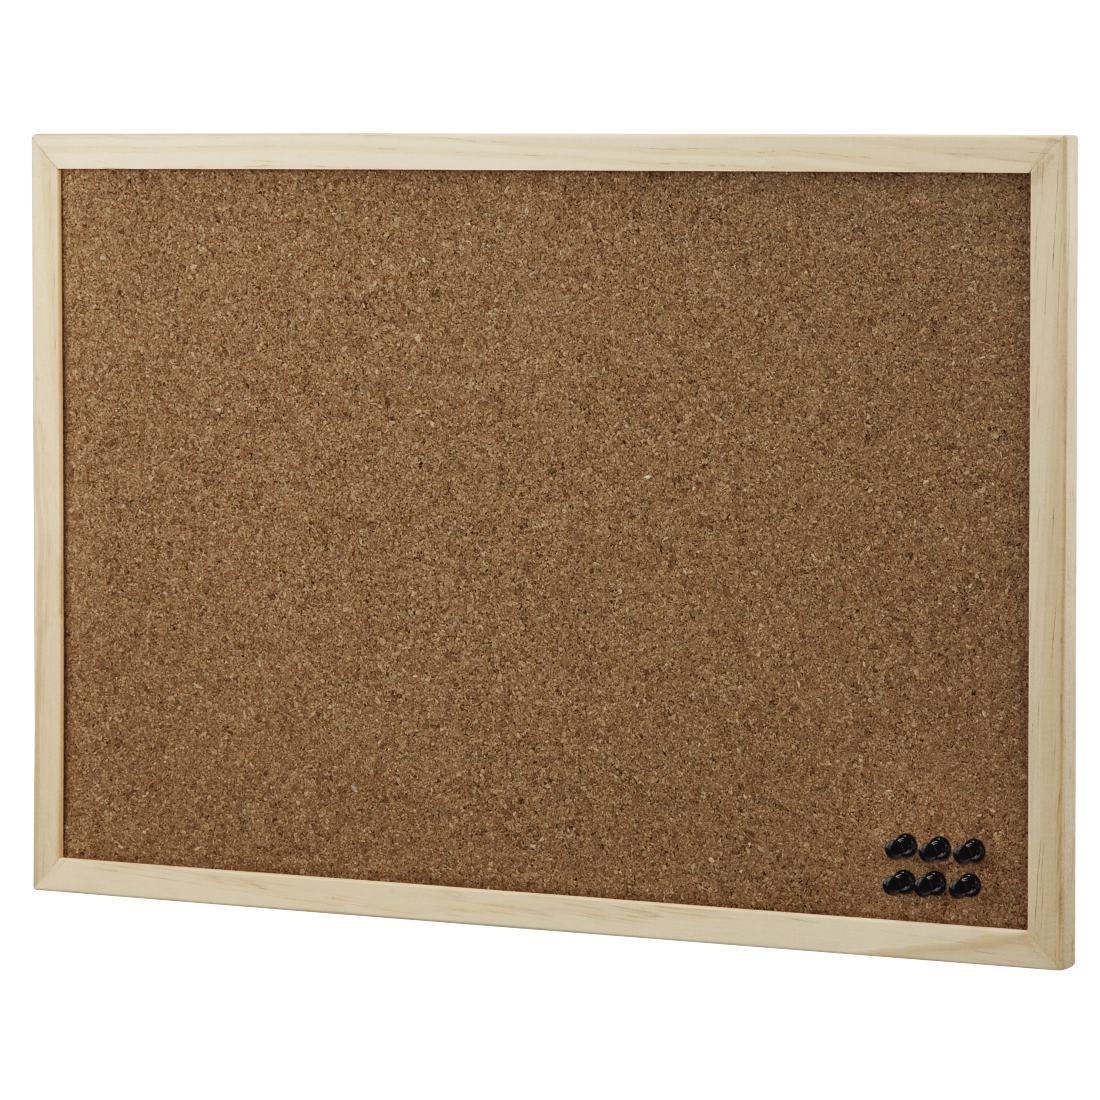 abx2 High-Res Image 2 - Hama, Pin Board, 29.5 x 39.5 cm, wood, cork on both sides, nature